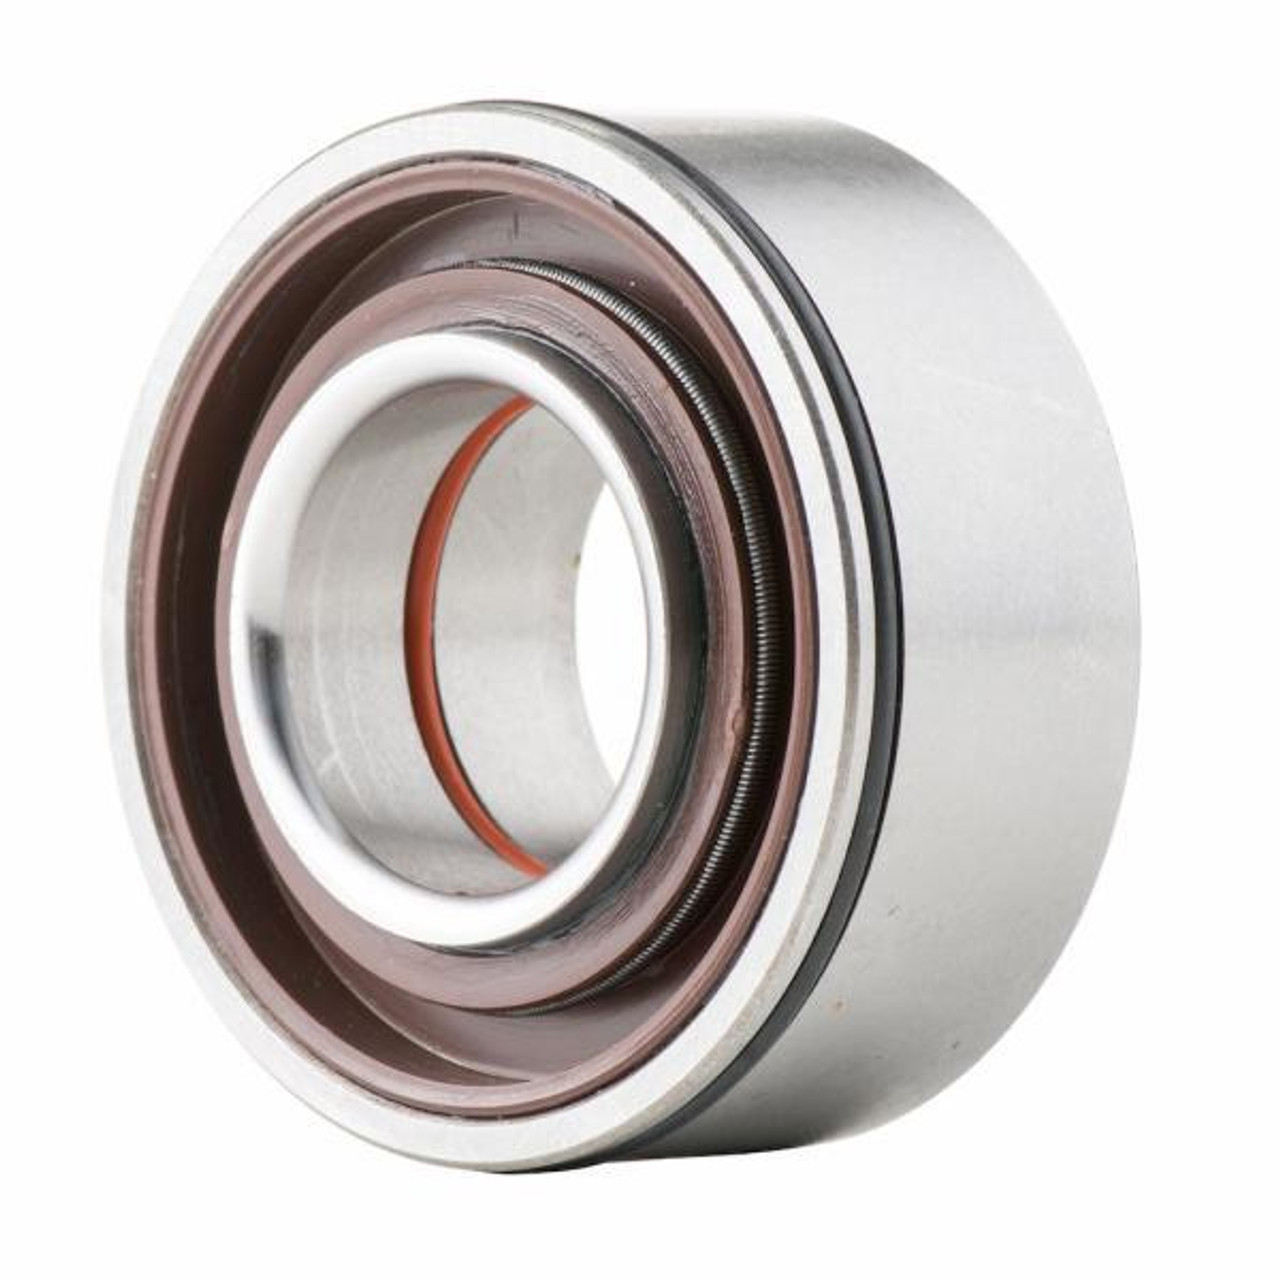 Crankshaft bearing with oil seal with PTFE lip, back right view